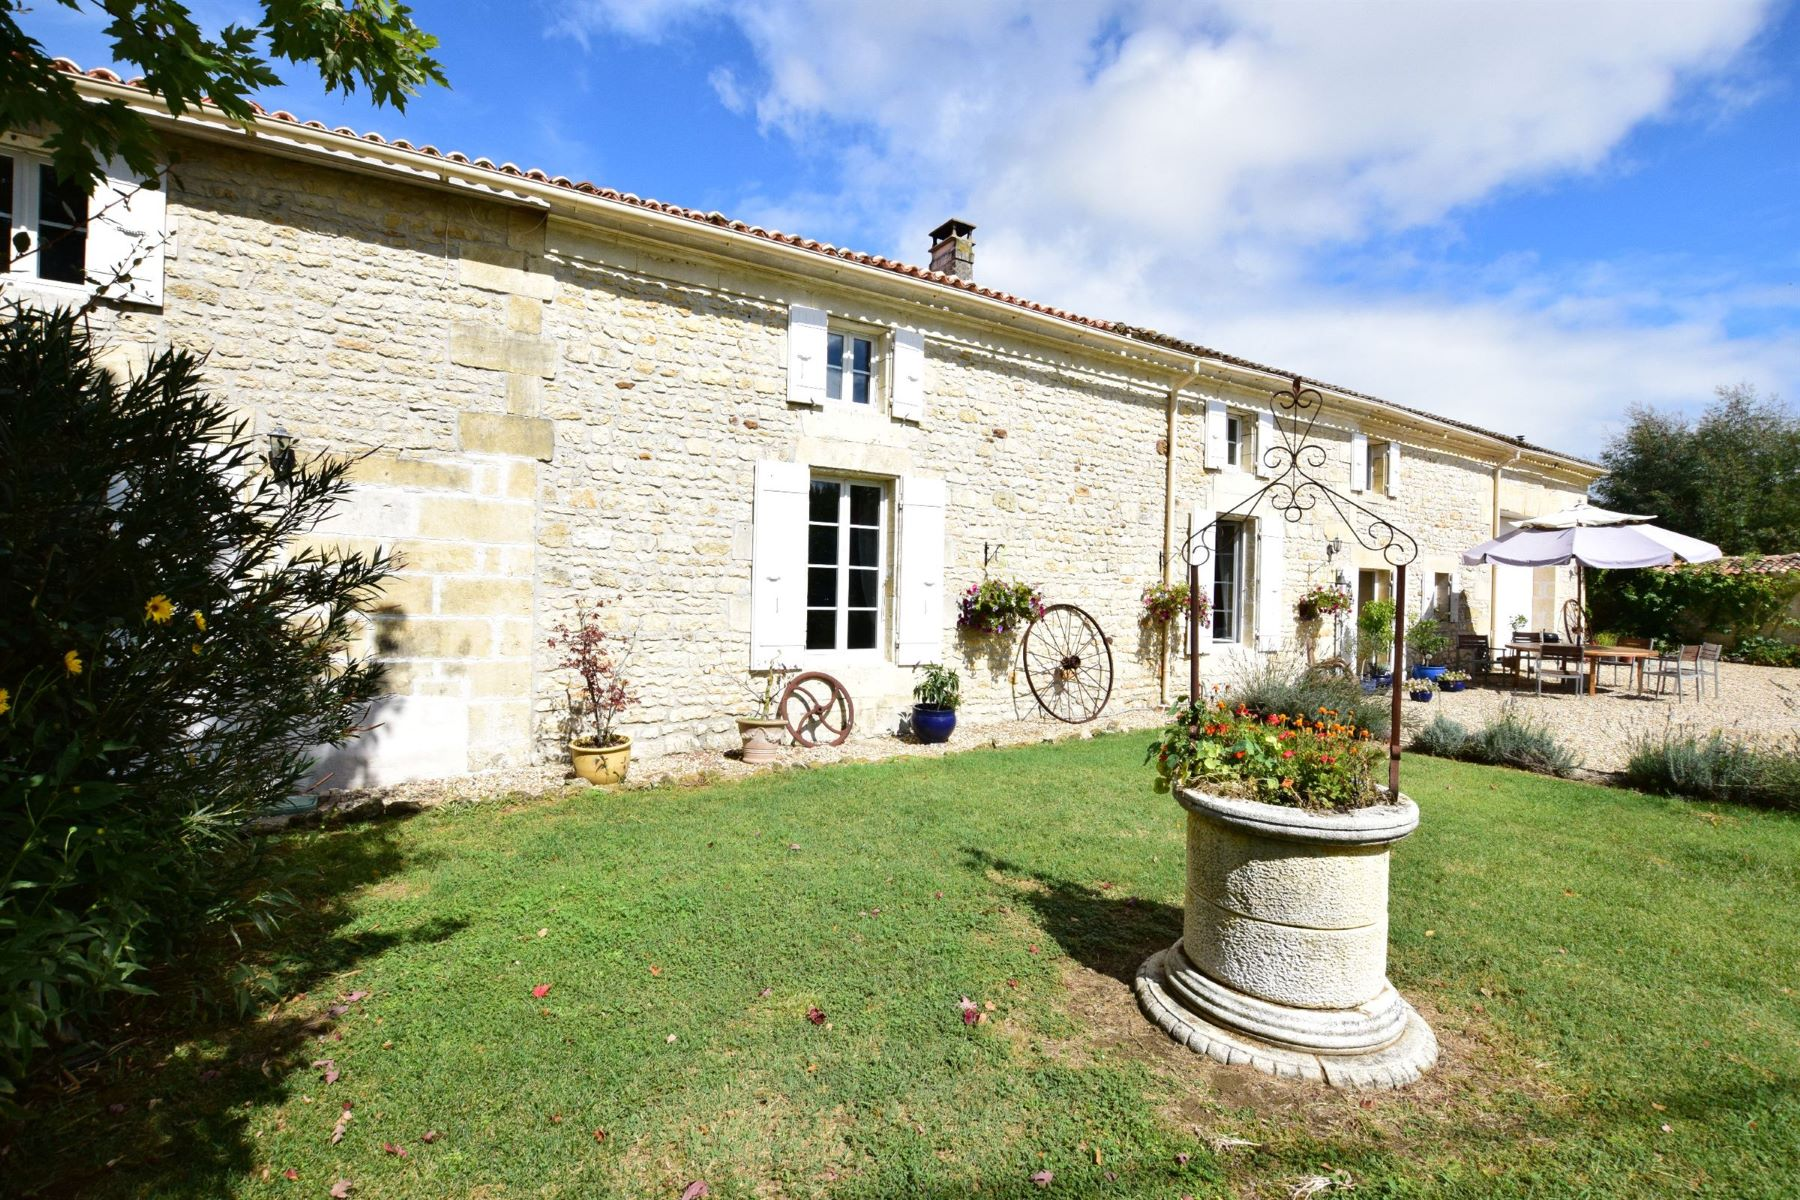 Single Family Home for Sale at Charentaise stone house with pool Gemozac, Poitou-Charentes 17260 France